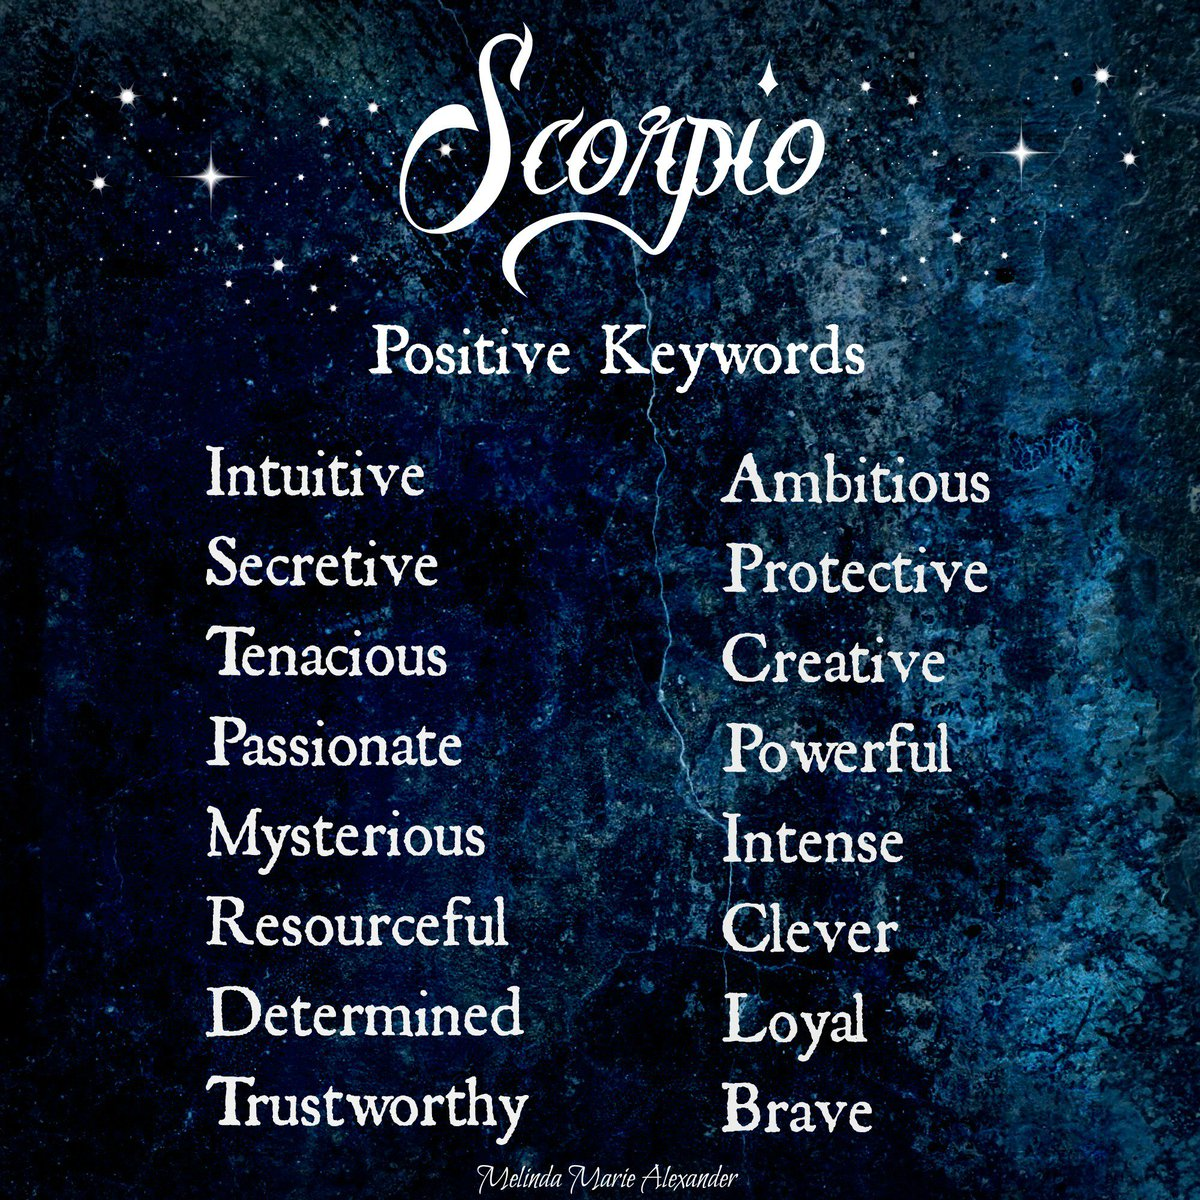 #Scorpio Positive Traits: Intuitive, Ambitious, Protective, Loyal.. Read more: https://t.co/MLpYiU1hw7 https://t.co/3HXqvx8HB5